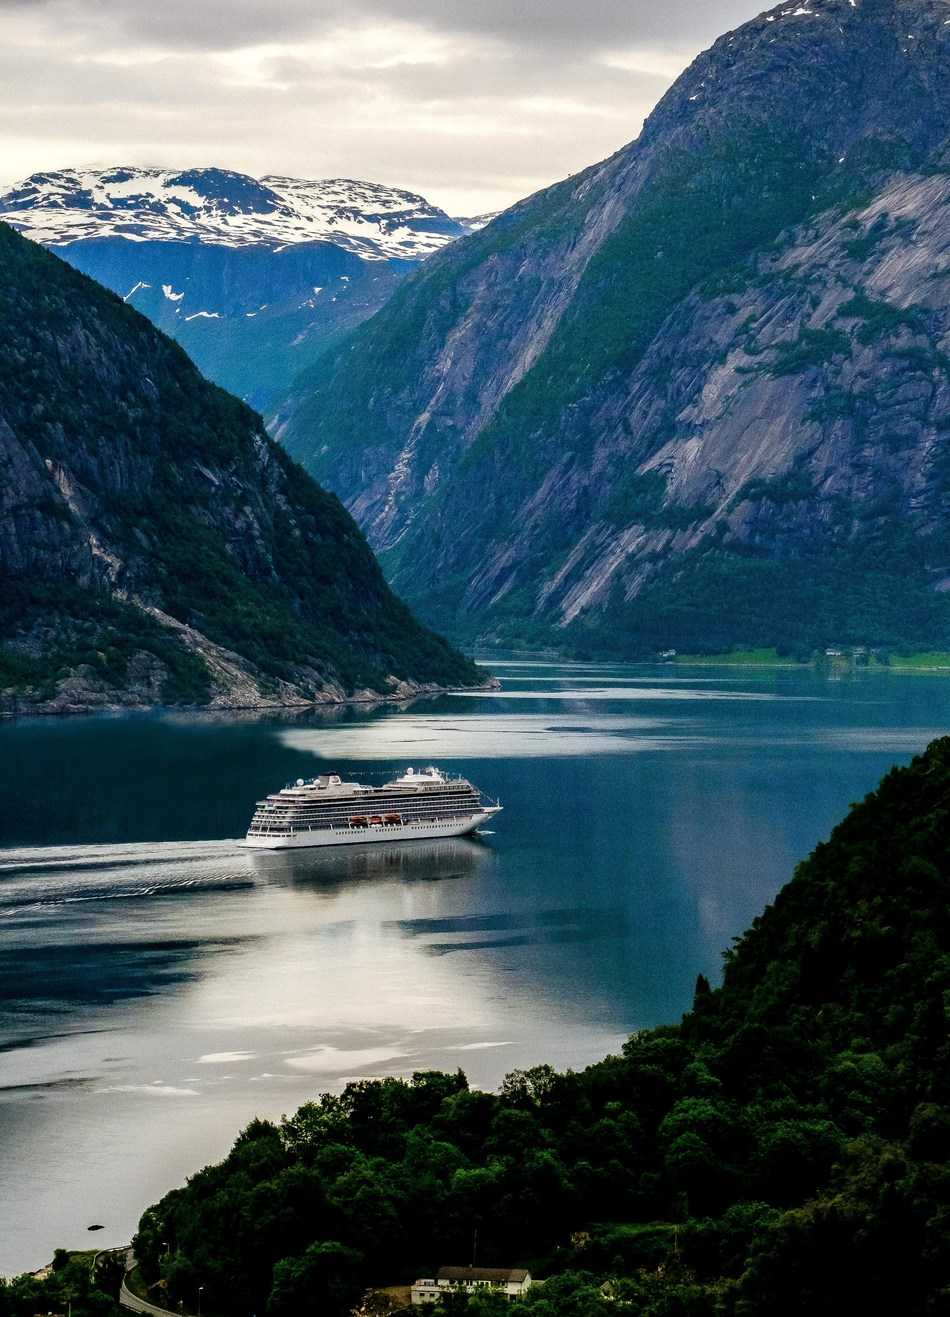 Viking Sky in Eidfjord, Norway on her way to be christened in Tromsø on June 22. Visit www.vikingruises.com for more information.